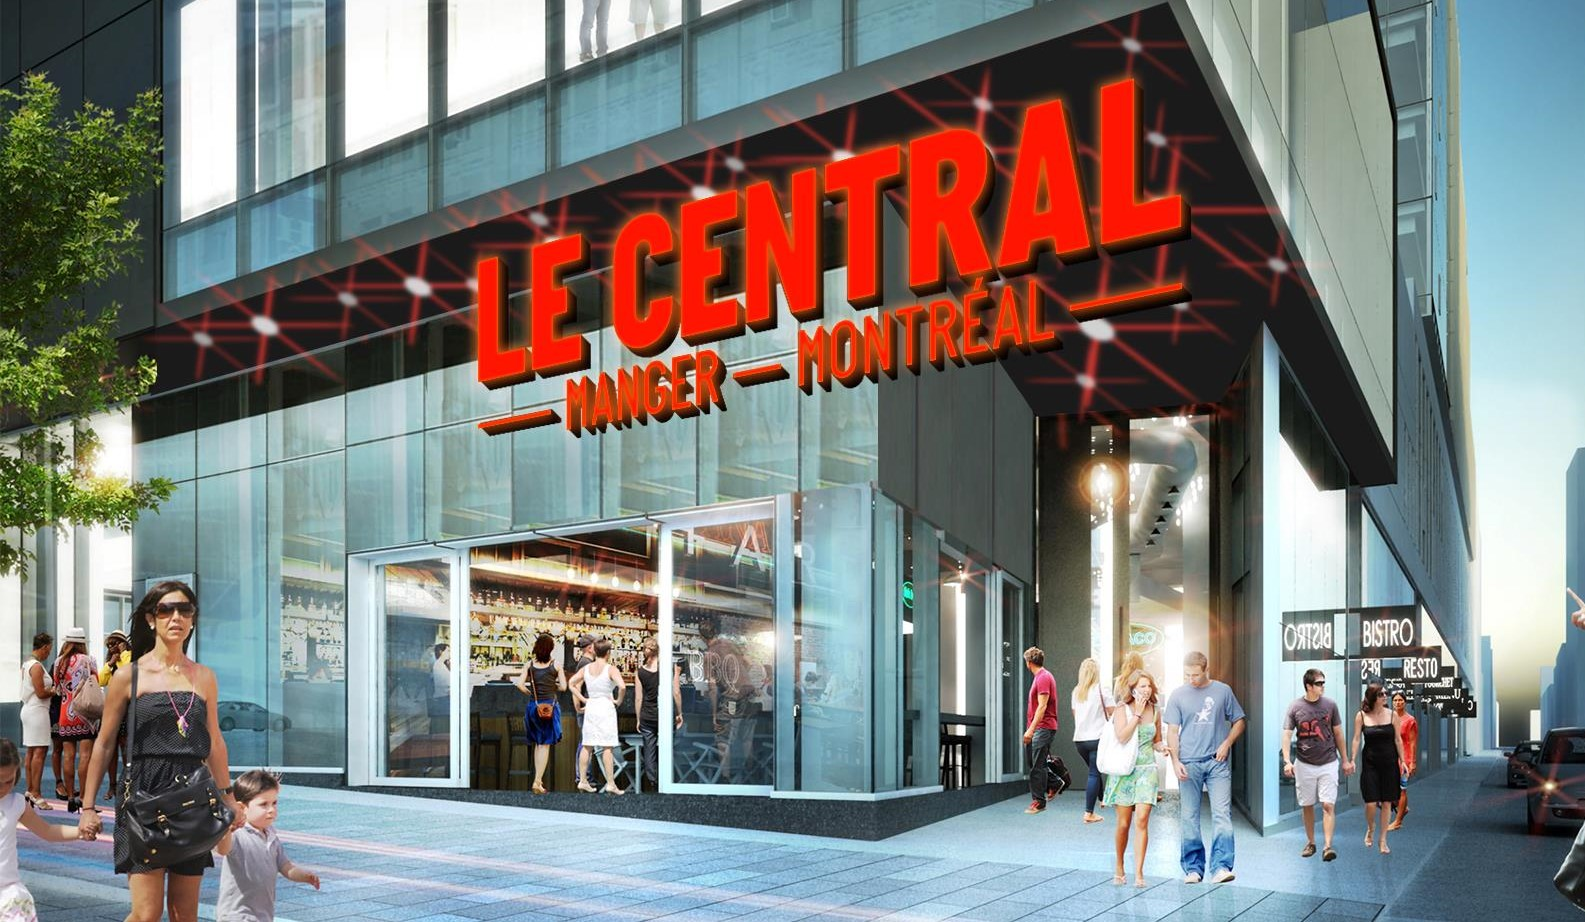 An architect's rendering of Le Central as seen from its window-lined exterior.